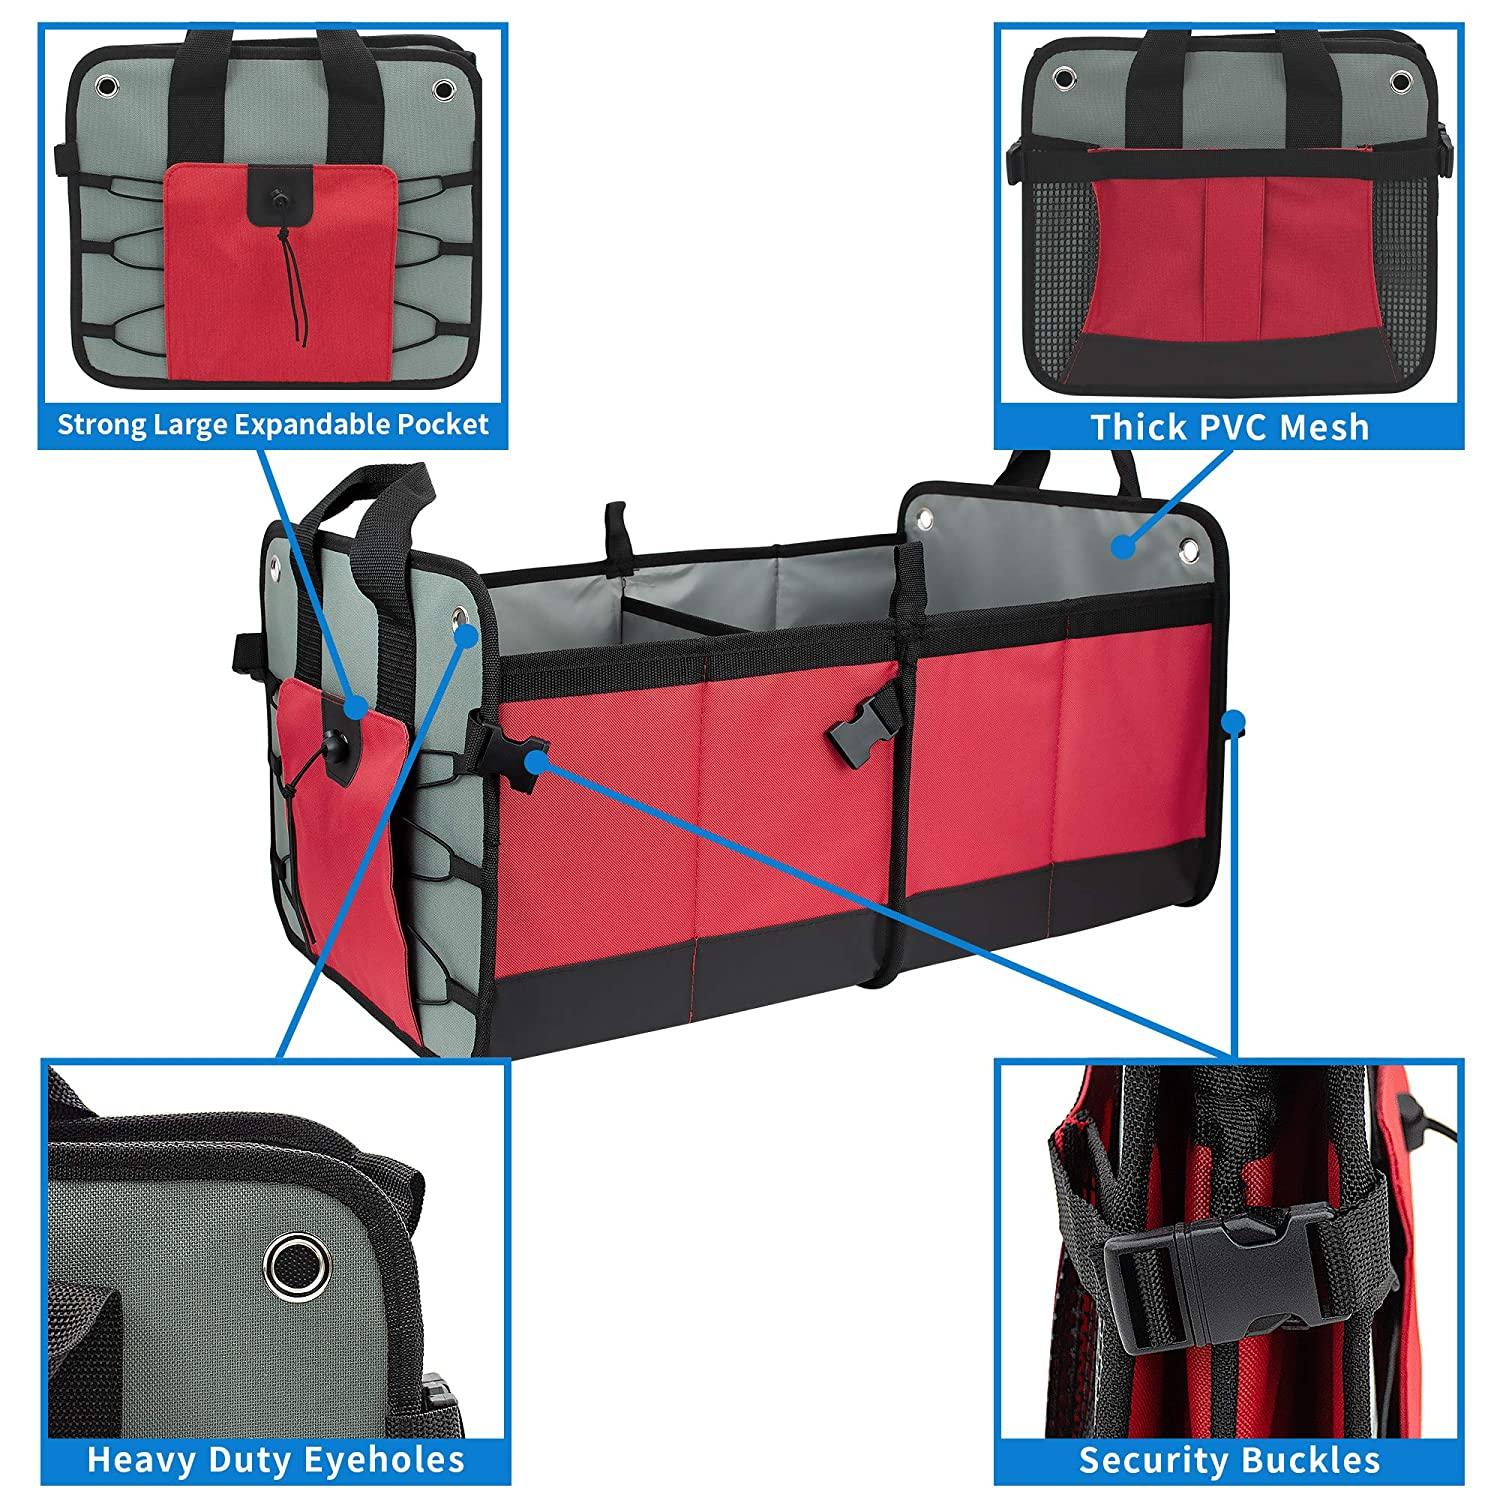 FIXSMITH-Car-Trunk-Organizer,Auto Trunk Organizer,RED,Collapsible Cargo Storage Container,Multipurpose,Portable Grocery Storage Basket with Two Large Compartments for SUV,Truck,Vehicle,Home /& Office.